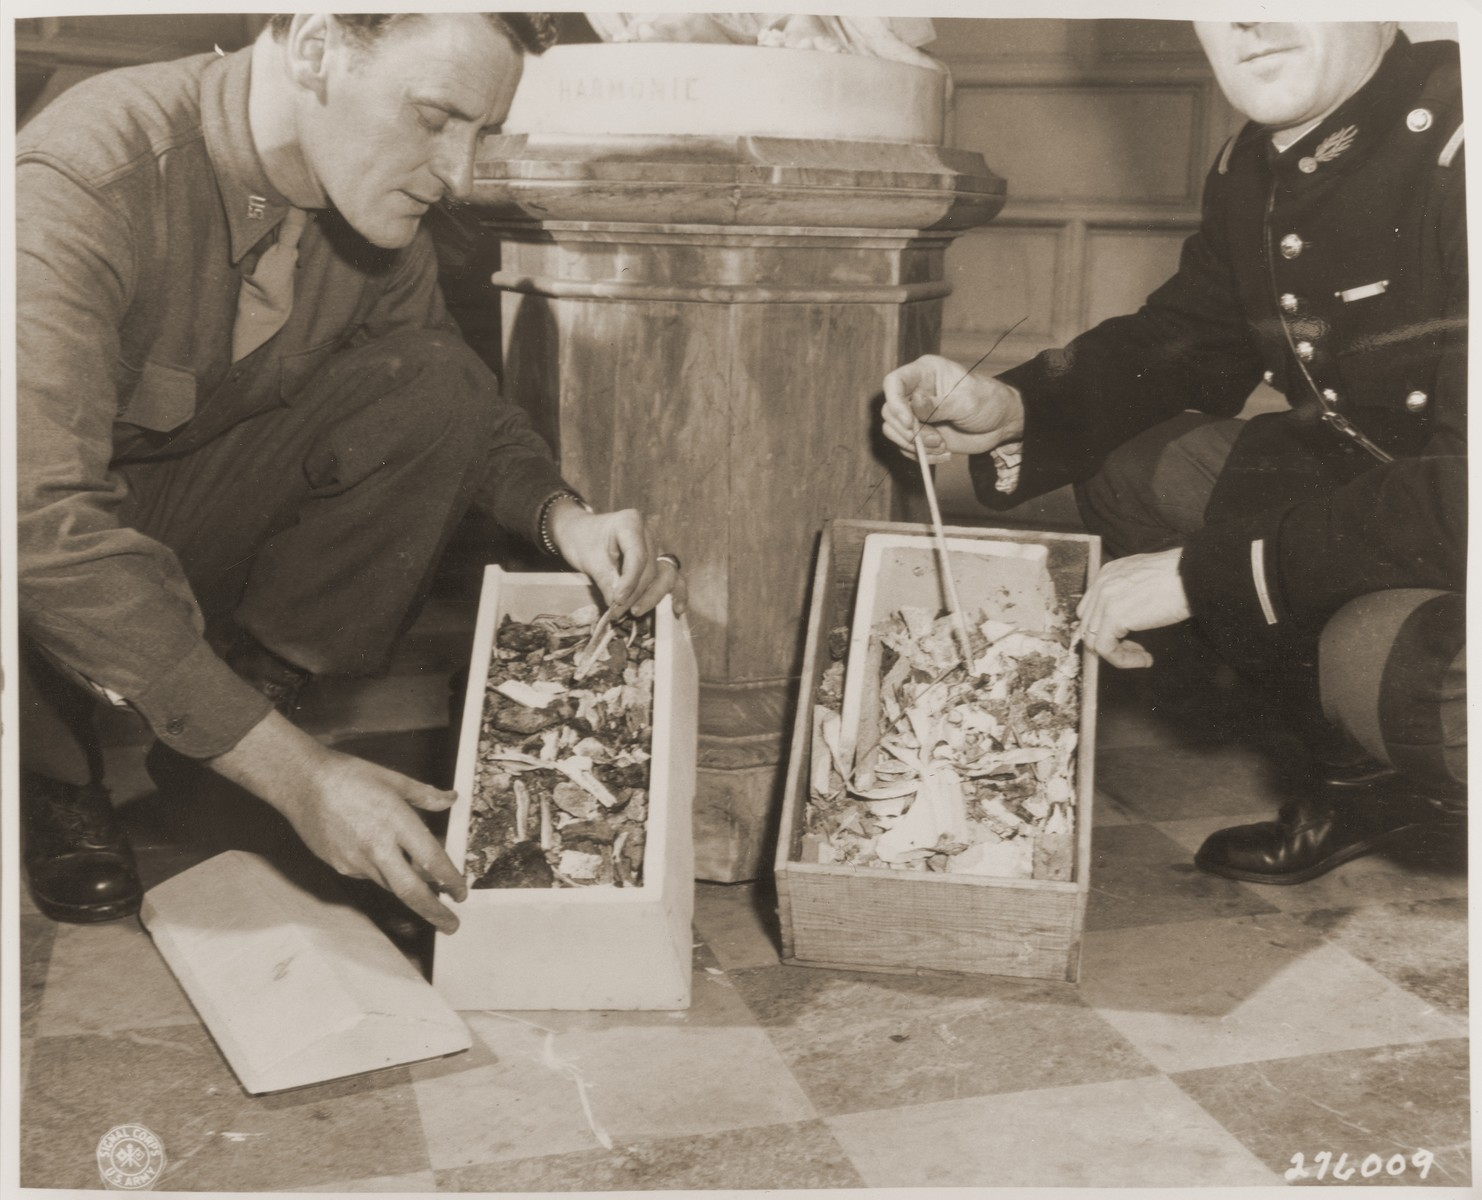 An American and a French soldier examine boxes containing the remains of human bones taken from the incinerator at the German Gestapo headquarters building in Paris.